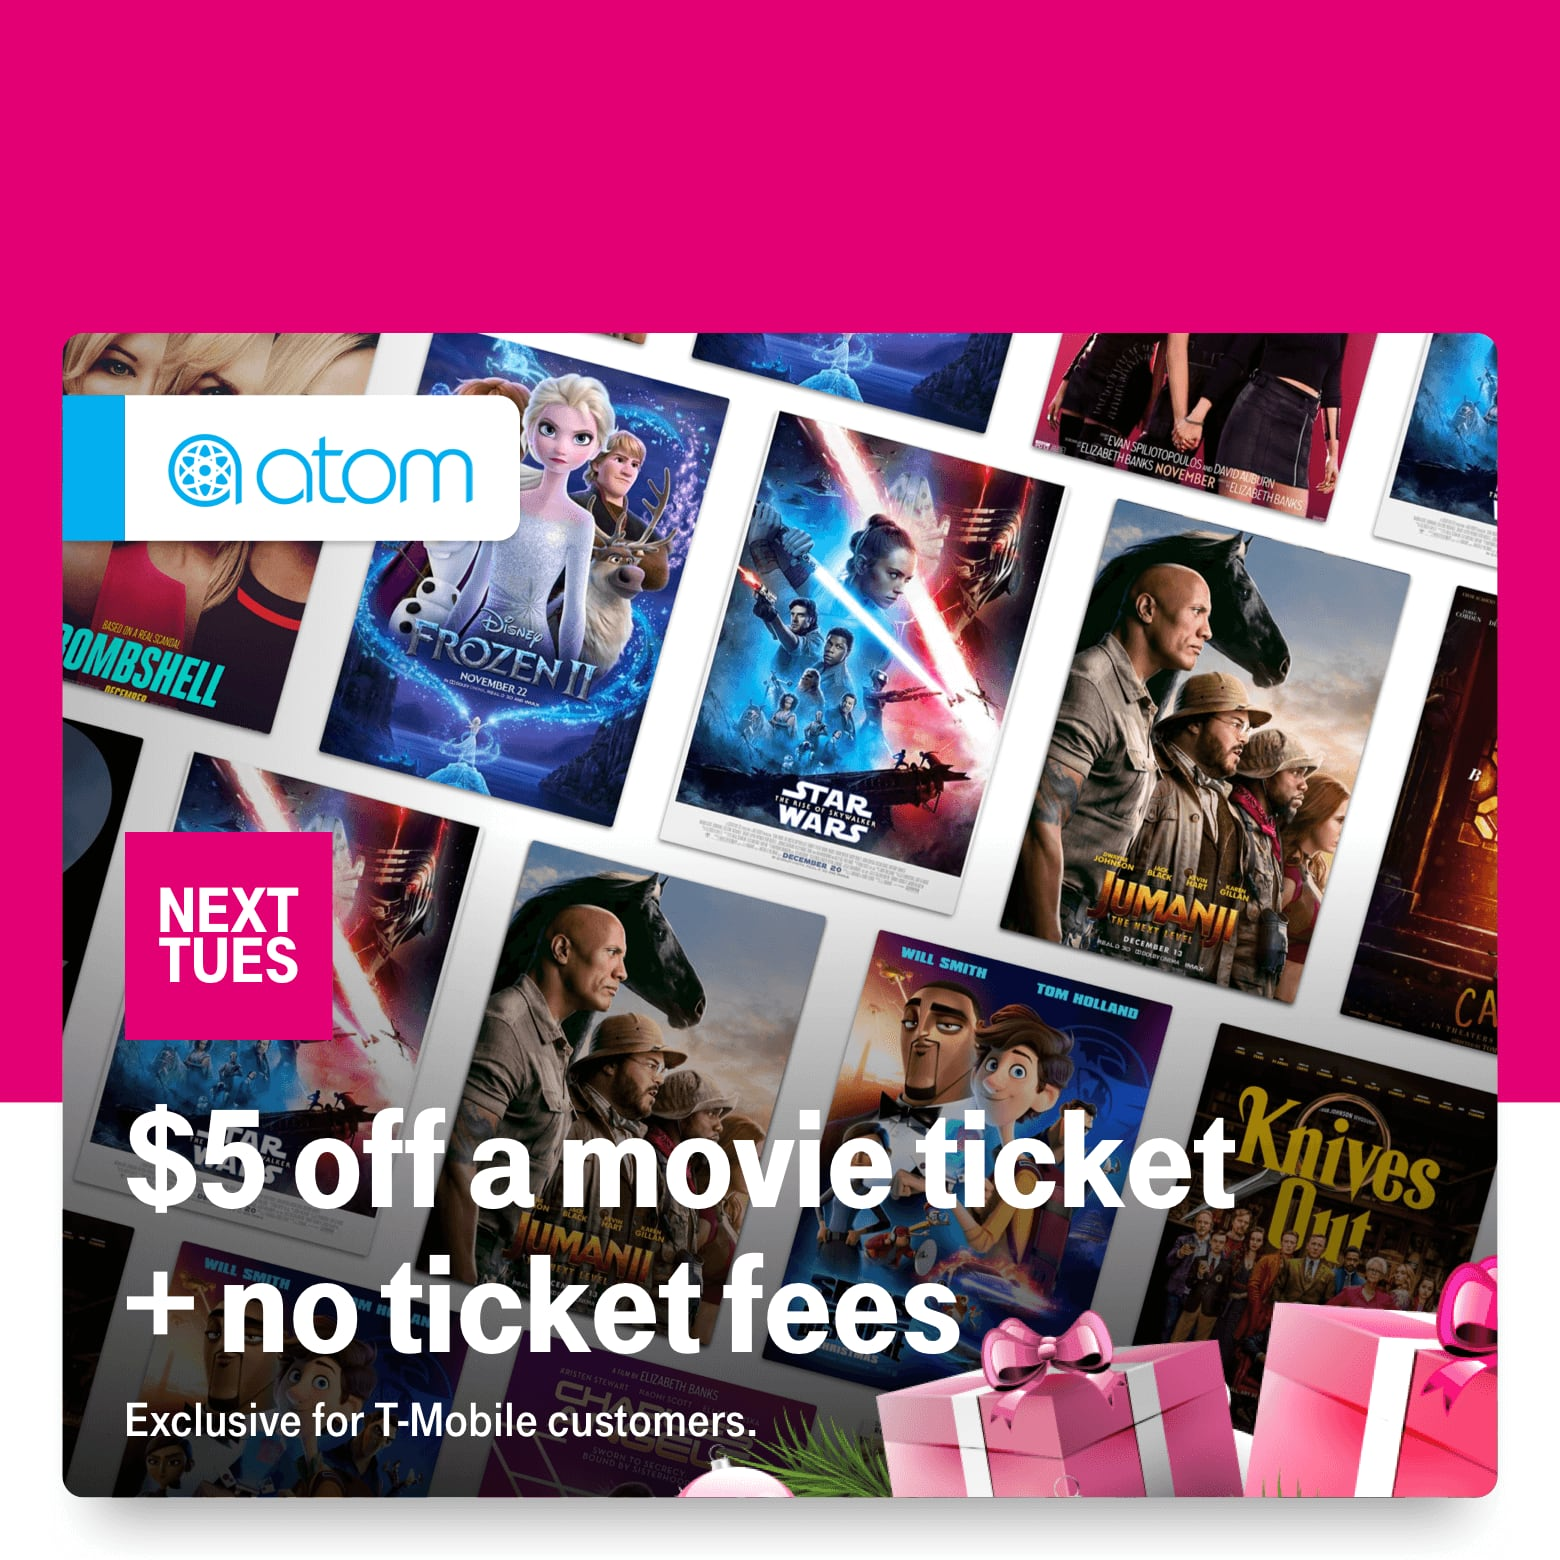 T-Mobile Customers 12/24: Atom $5 off movie tickets, Shutterfly $25 off, Tinggly $40 off gift box